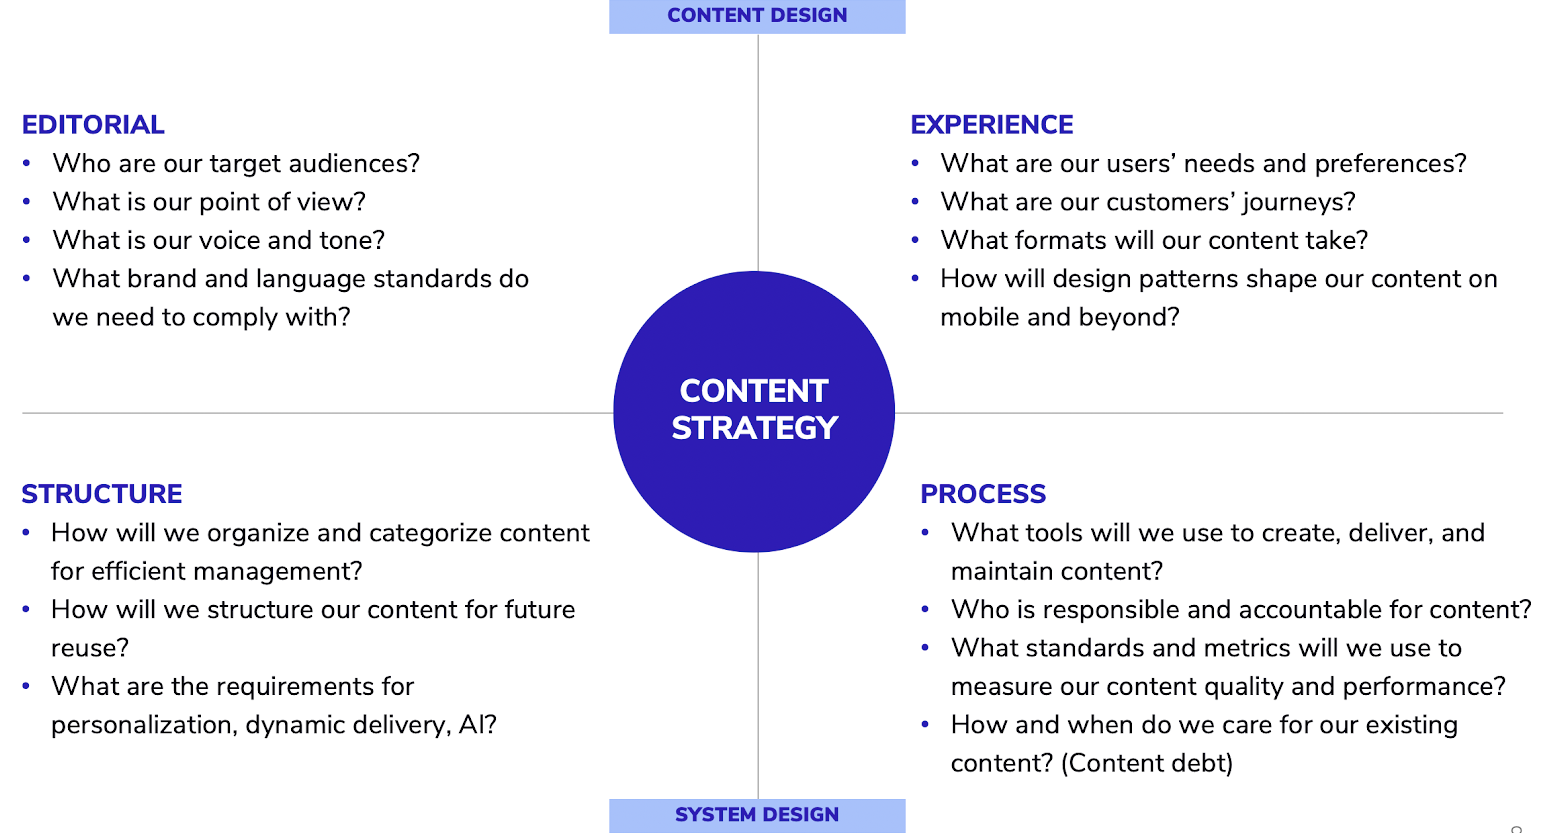 image with content strategy and the question you should ask to shape that strategy